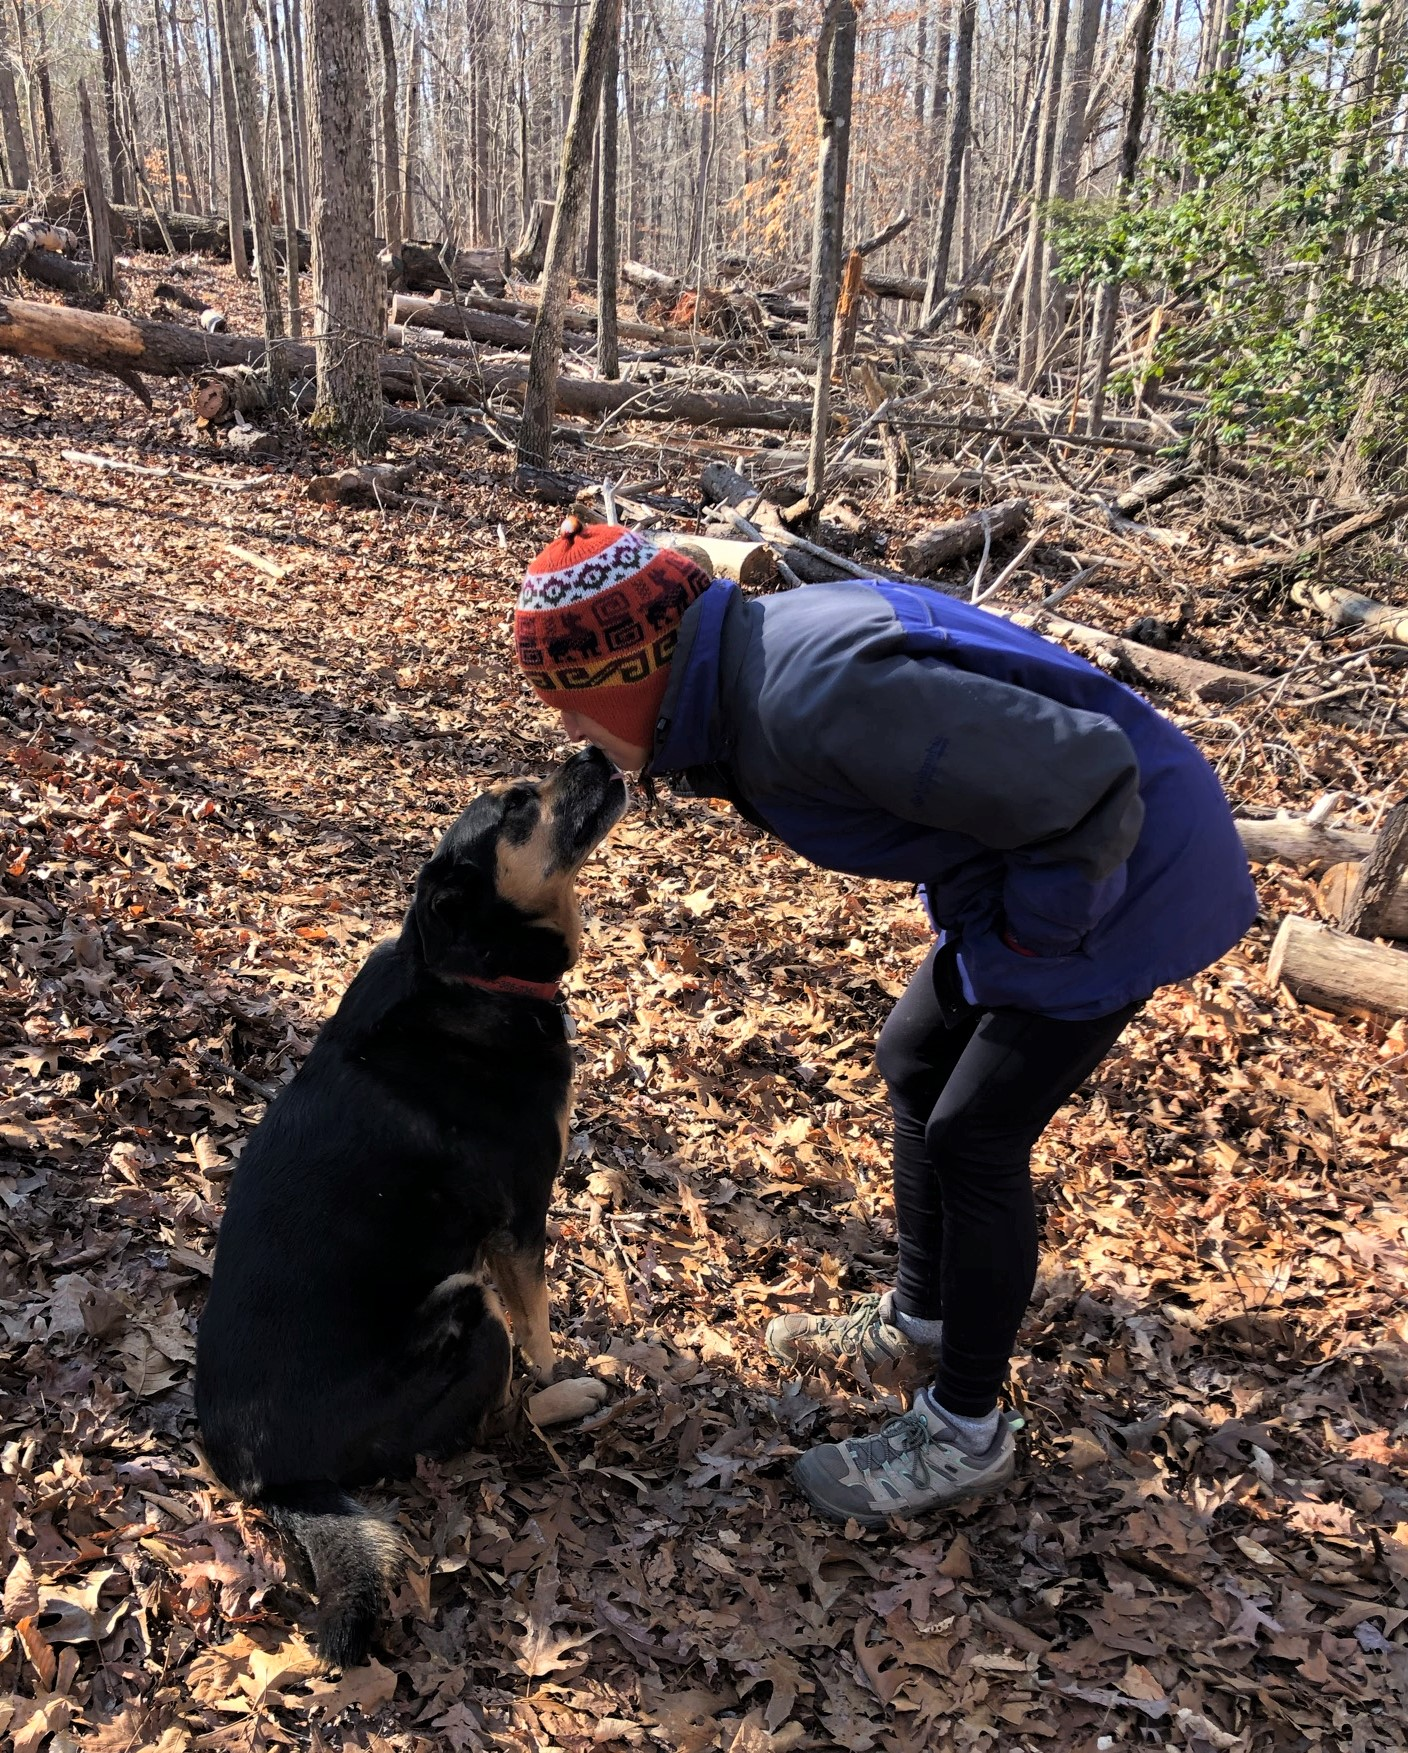 Dog kissing a woman in the woods